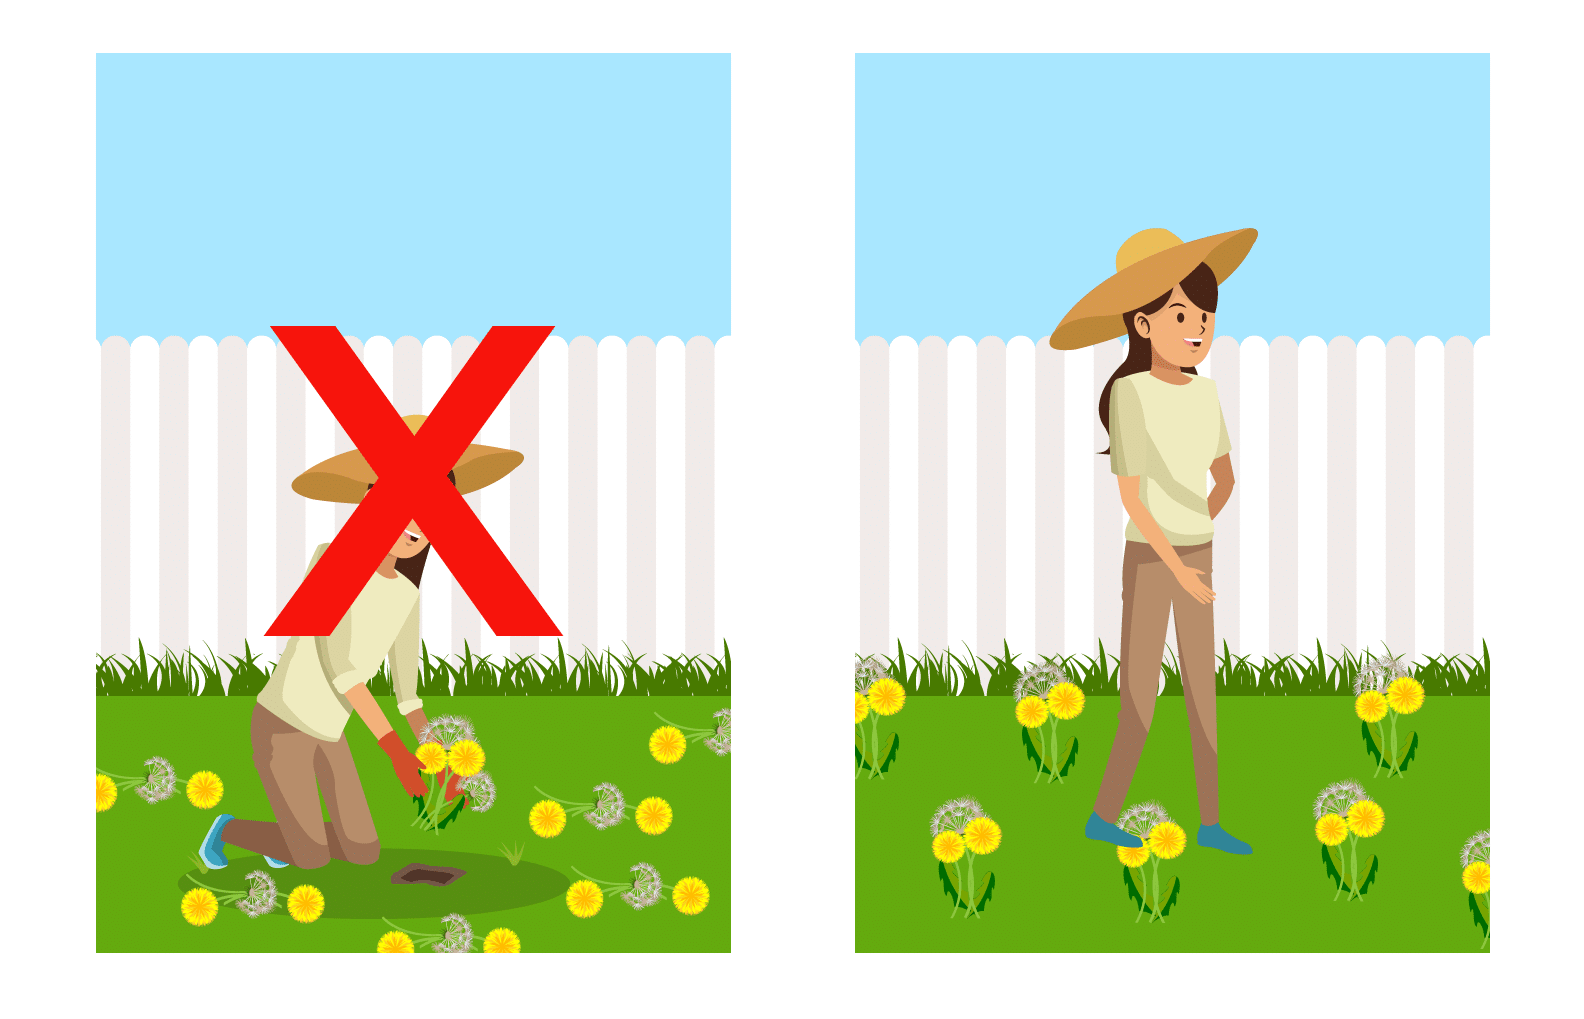 split graphic. red X over woman on left side removing all weeds in yard and woman on right side is letting them grow